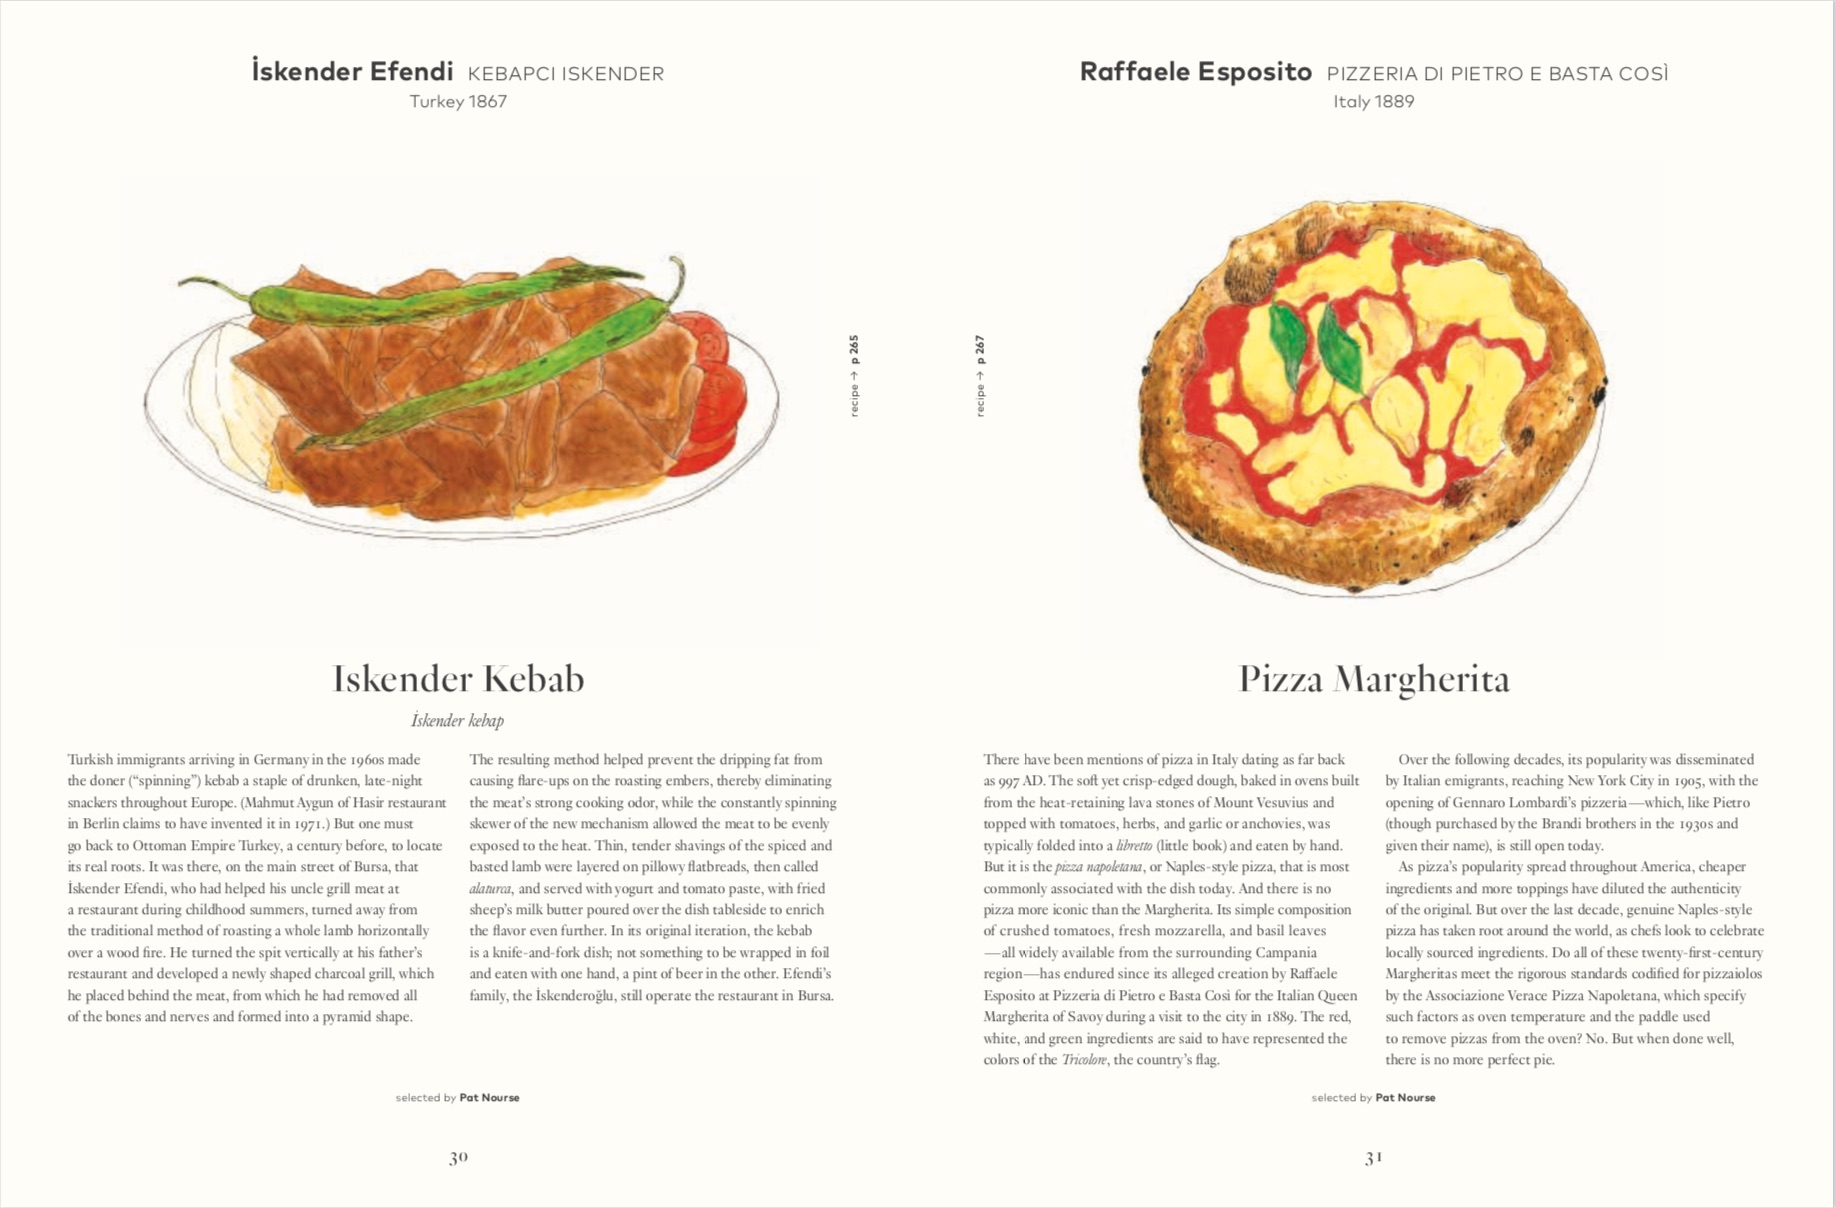 By Phaidon Press Ltd from Signature Dishes that Matter copyright Phaidon Press Ltd 2019